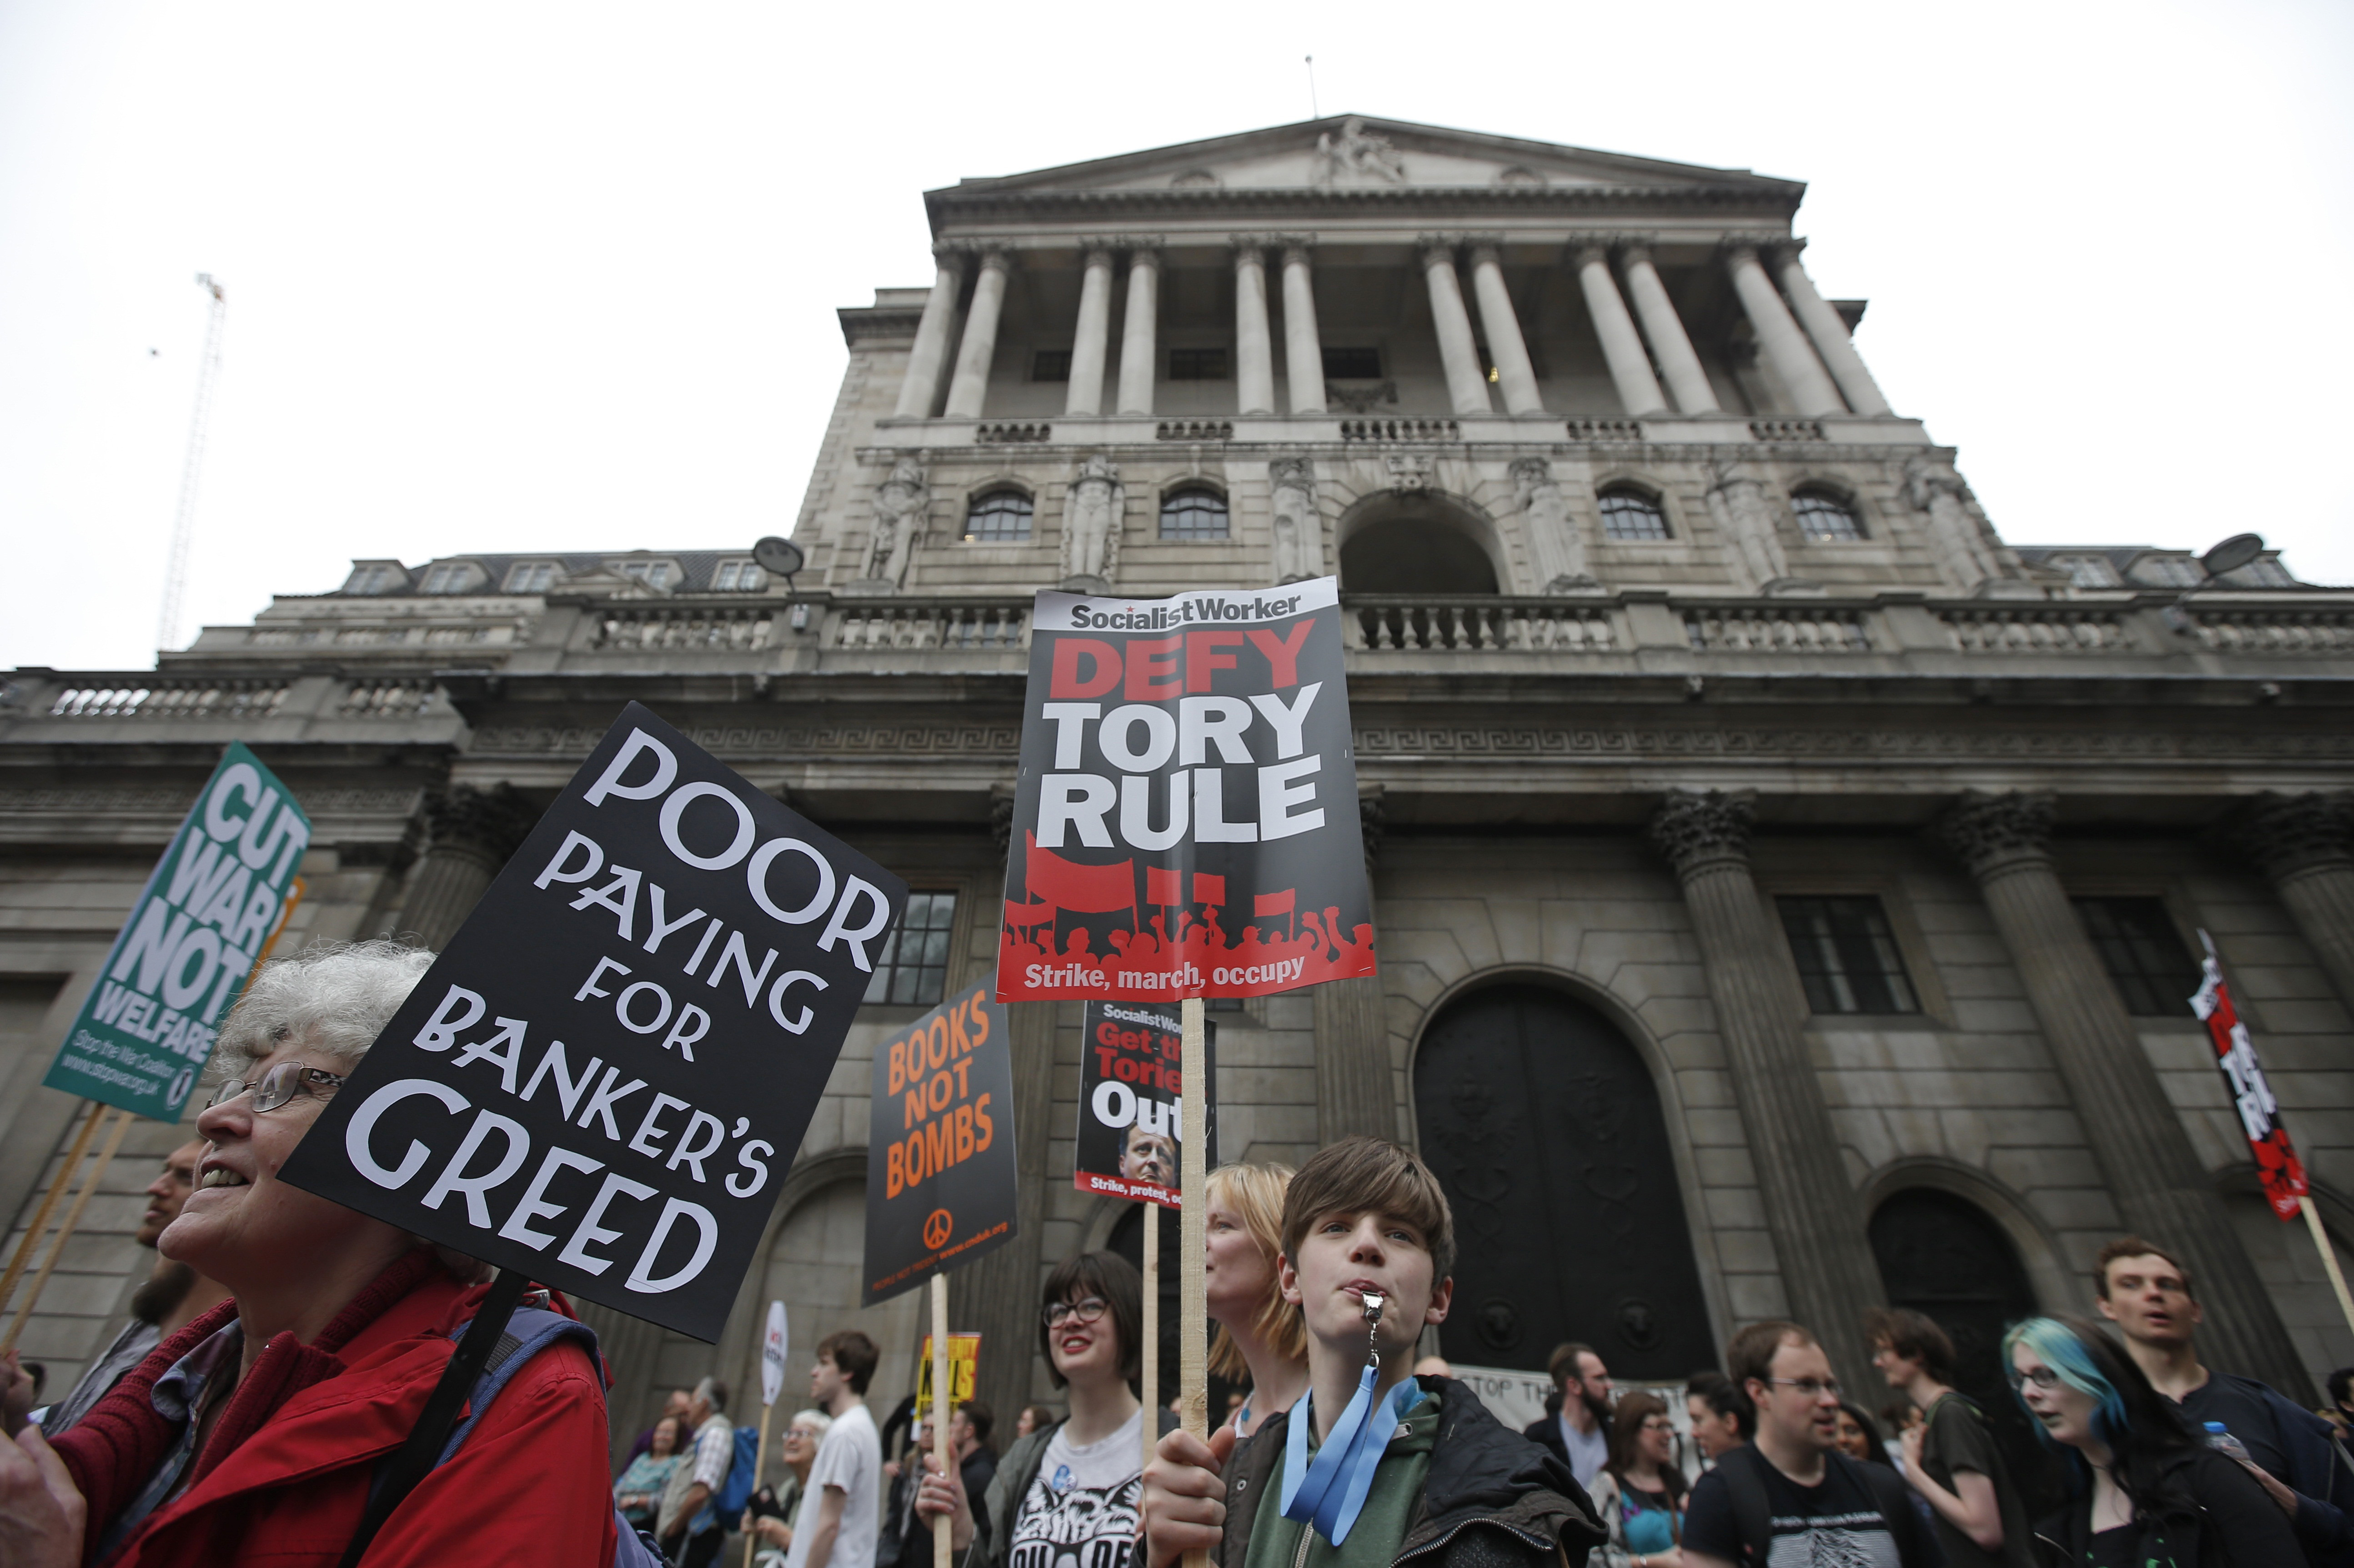 Demonstrators march past the Bank of England during an anti-austerity protest in central London, Britain June 20, 2015.  REUTERS/Peter Nicholls  - RTX1HD3S